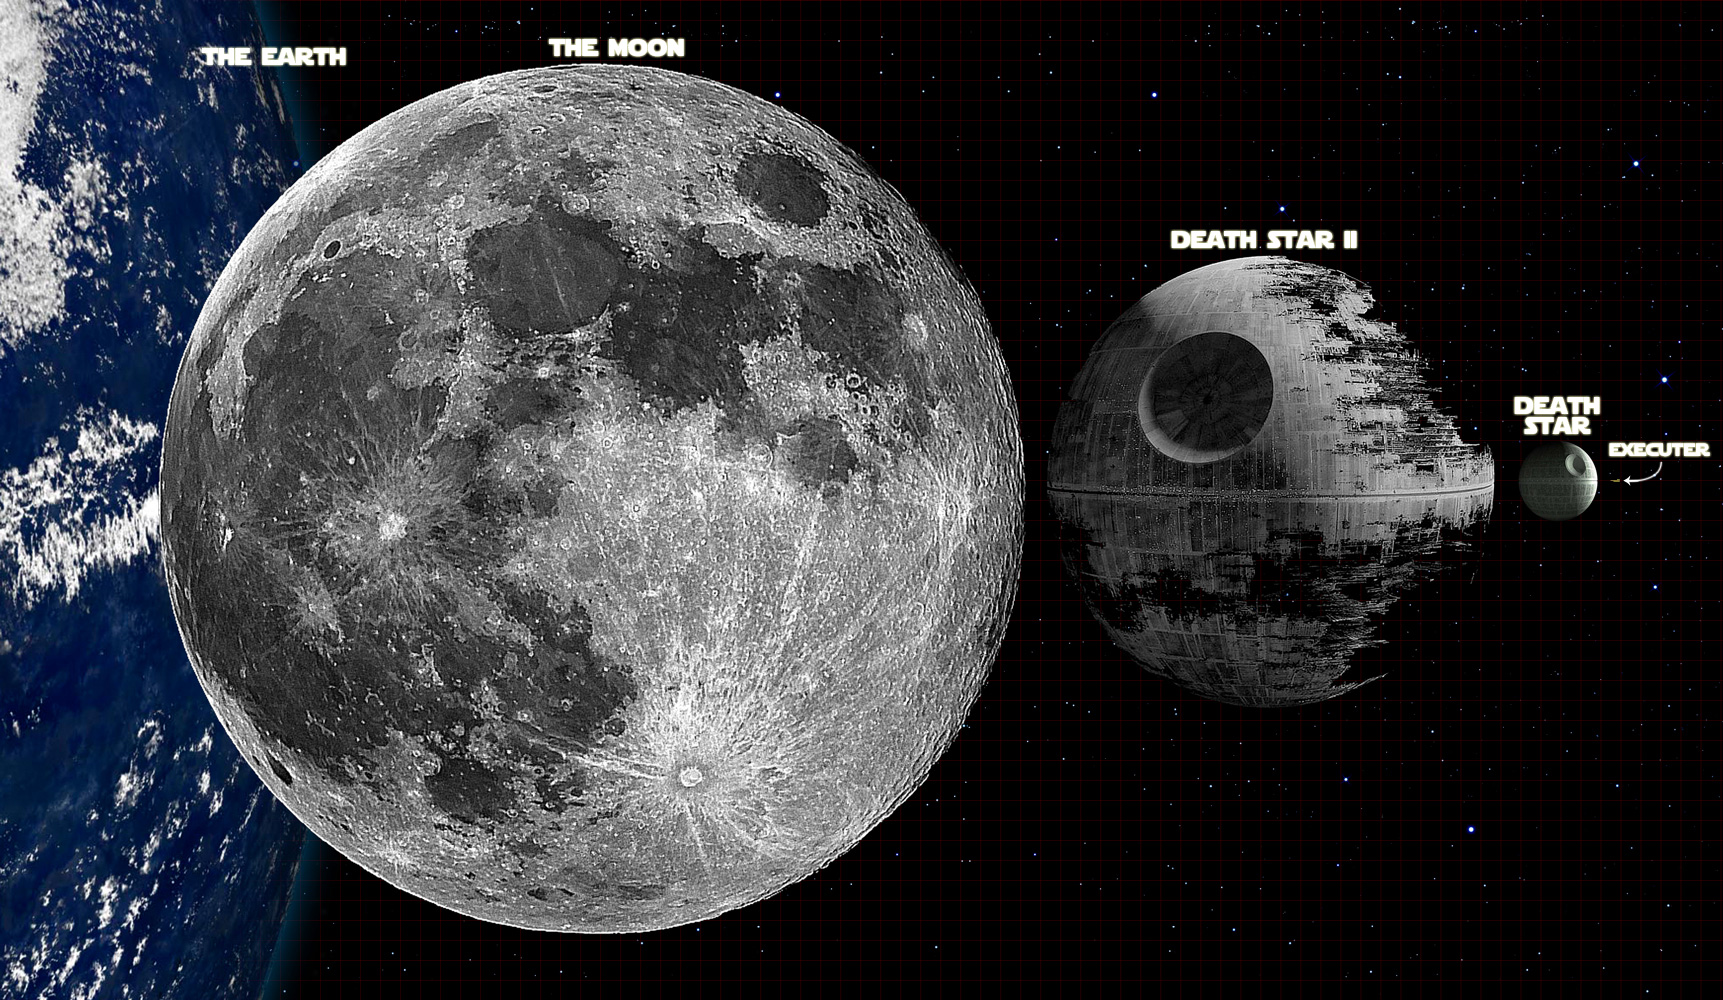 House Responds to Petition to Build a Death Star - size comparison